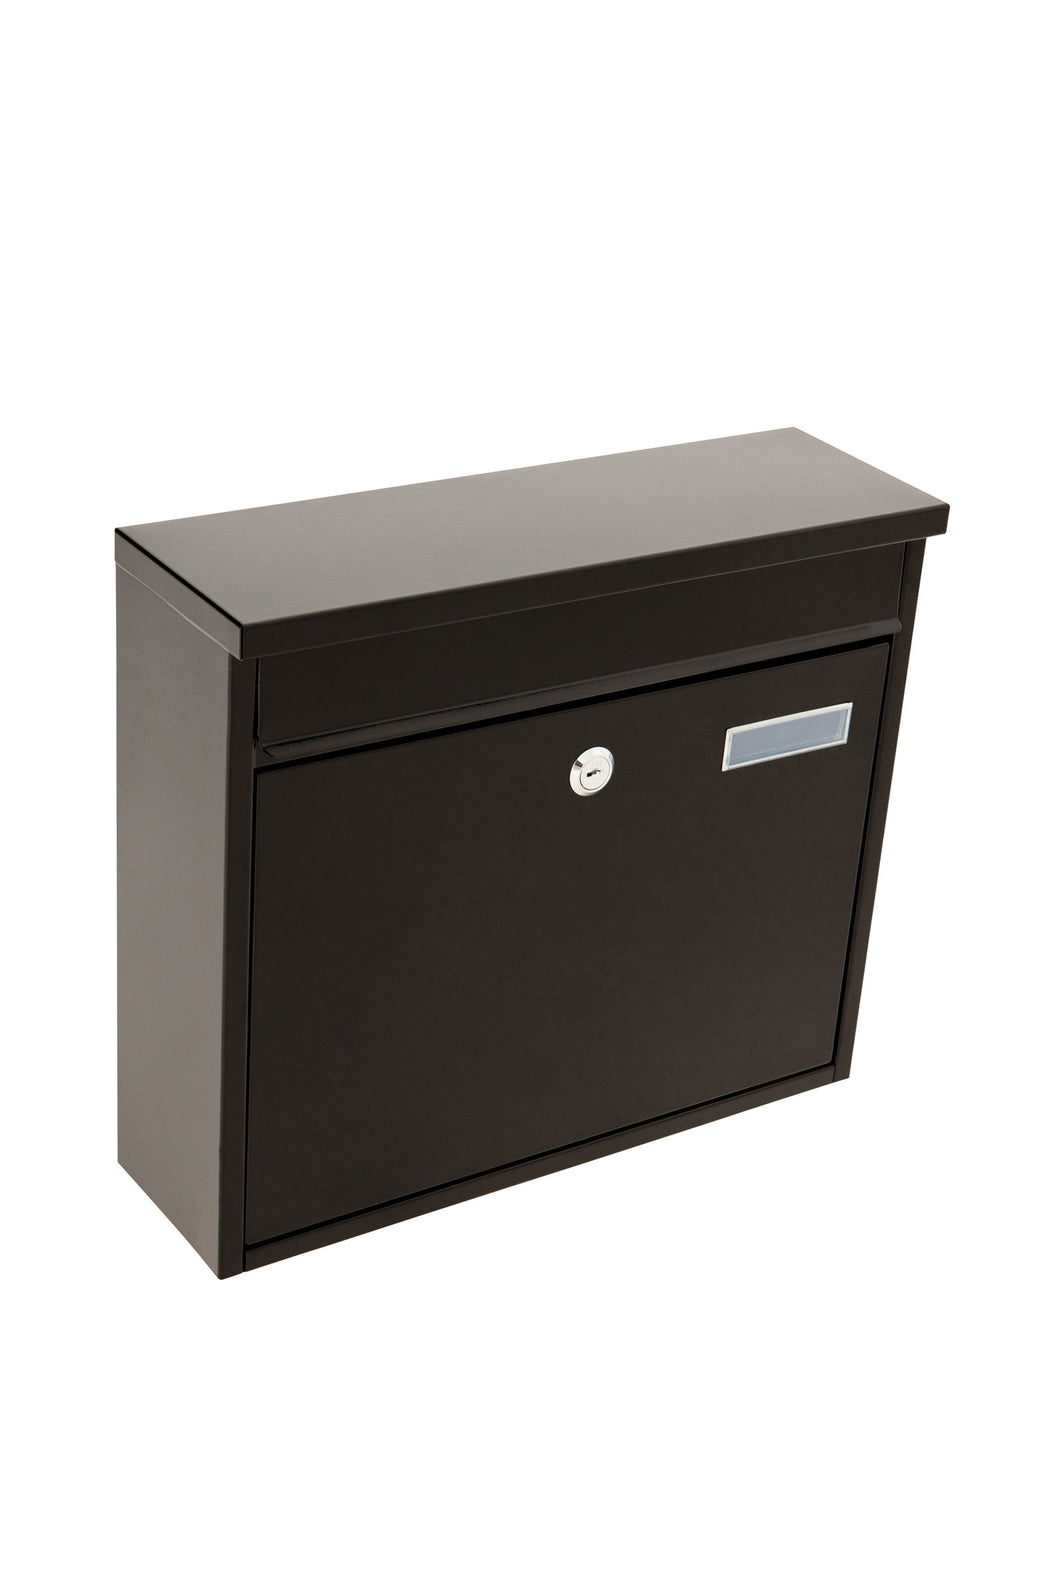 Barrow letterbox black front loading